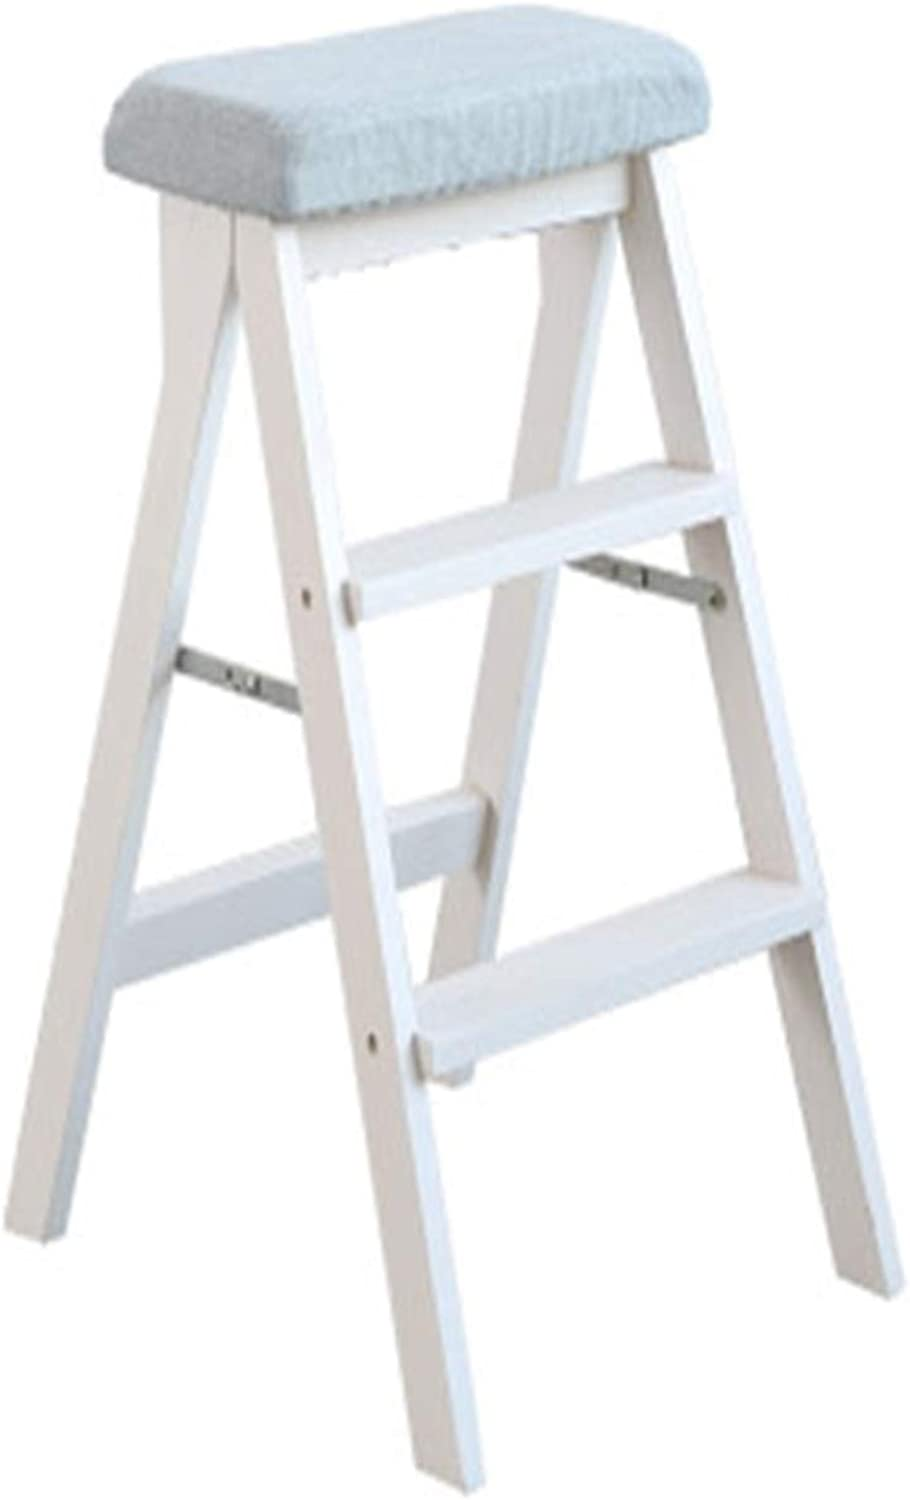 Stool Bar Stool Solid Wood Ladder Home Kitchen Fixed Chair Table Folding Chair White +